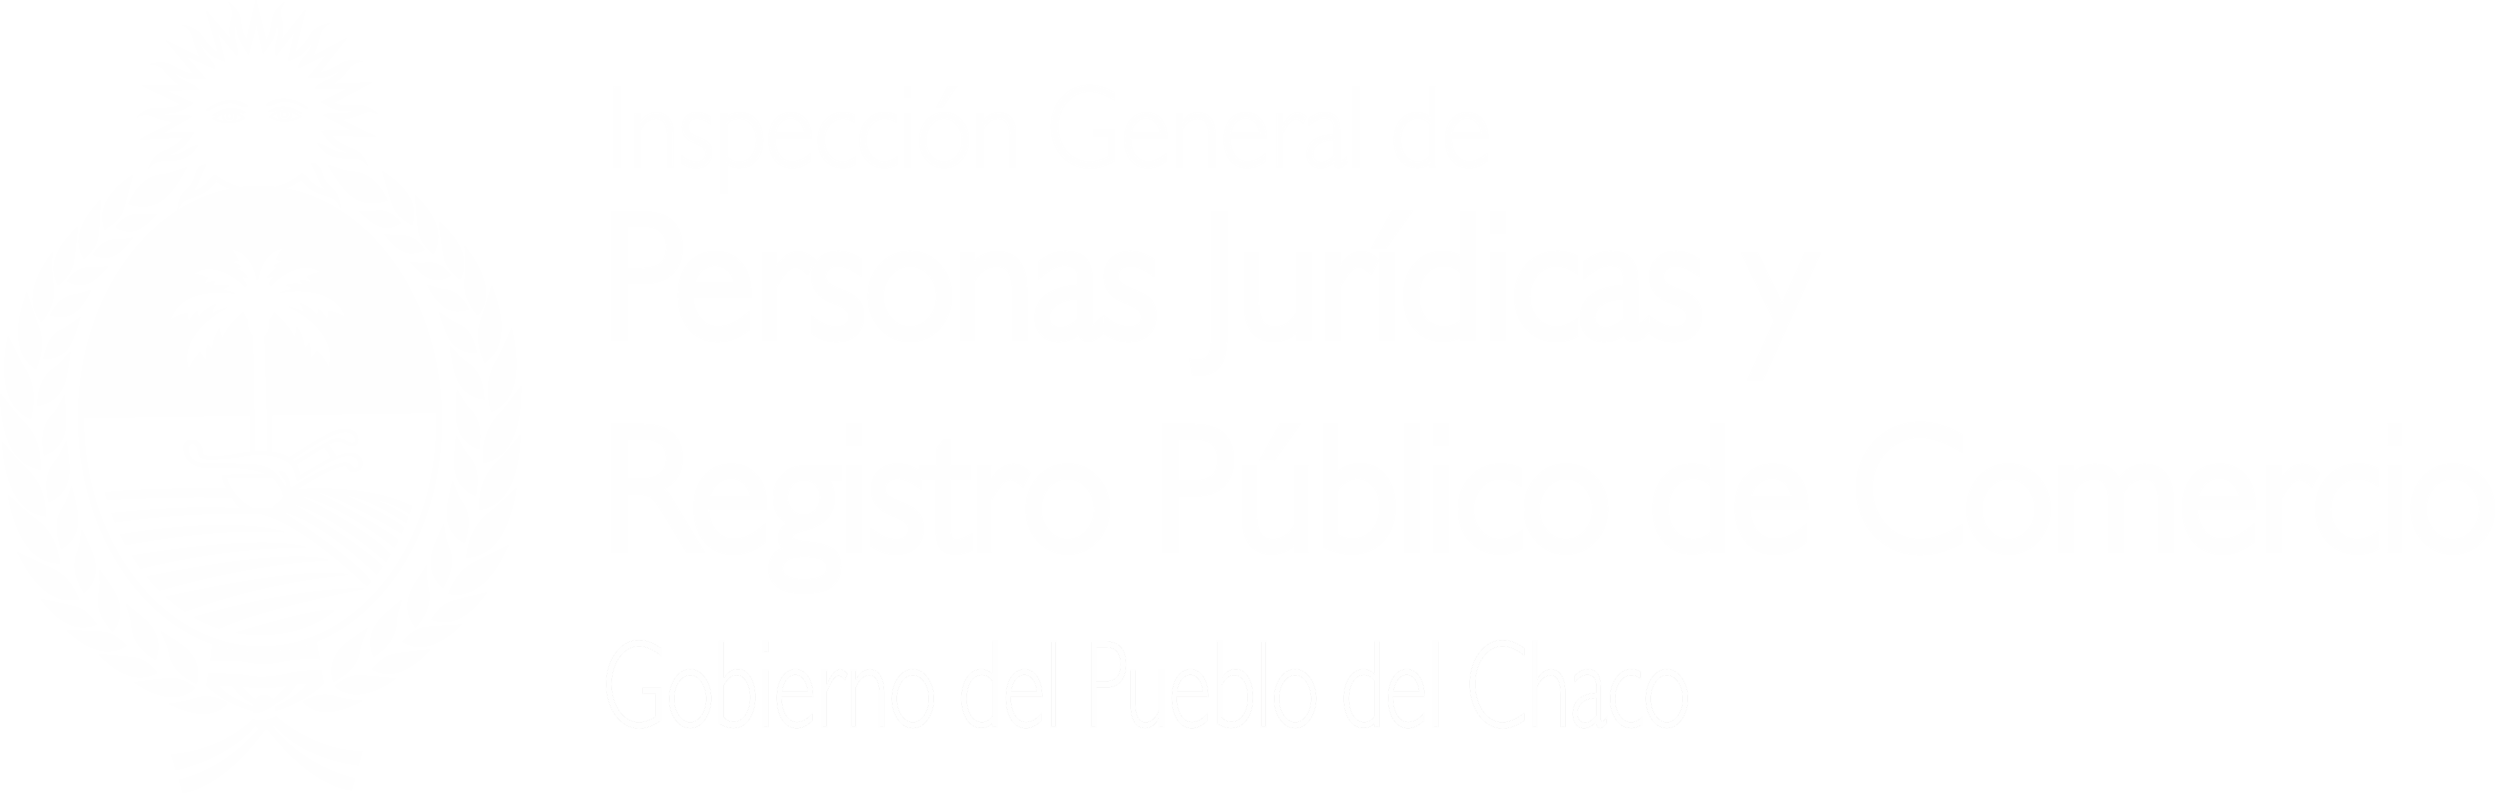 Inspeccion General de Personas Juridicas